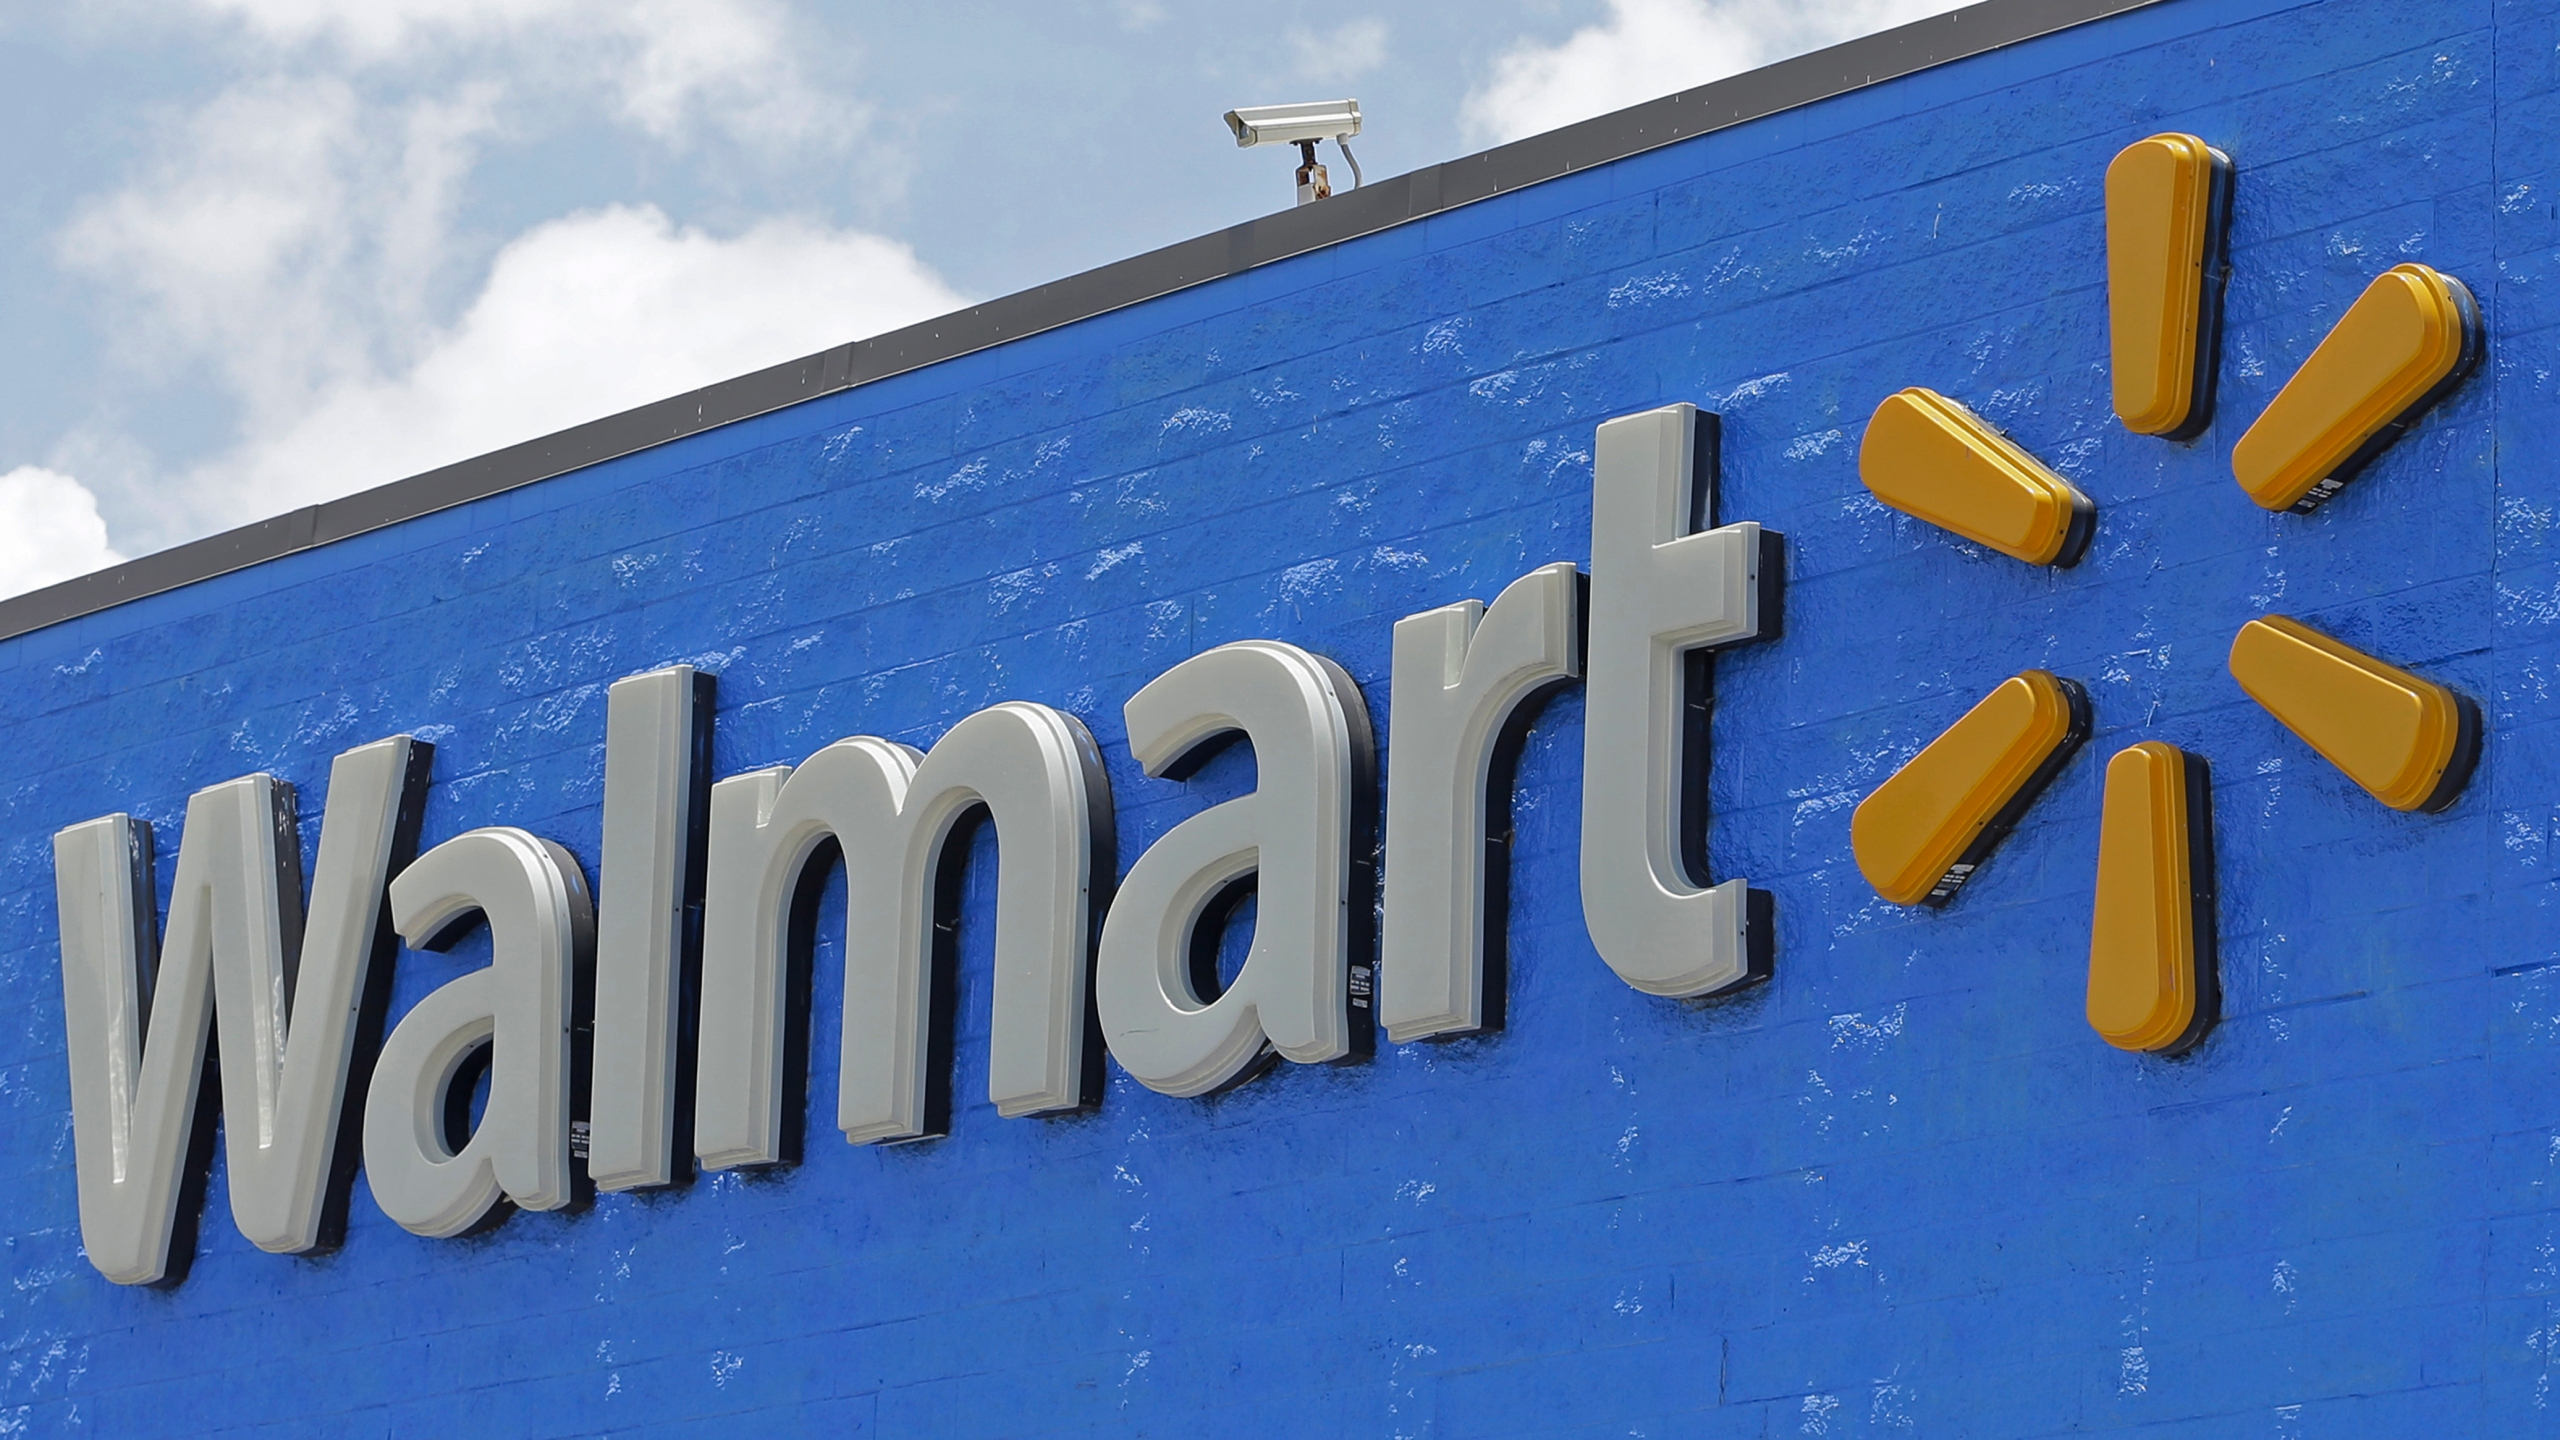 A Walmart sign is seen in a file photo. (AP Photo/Alan Diaz, File)